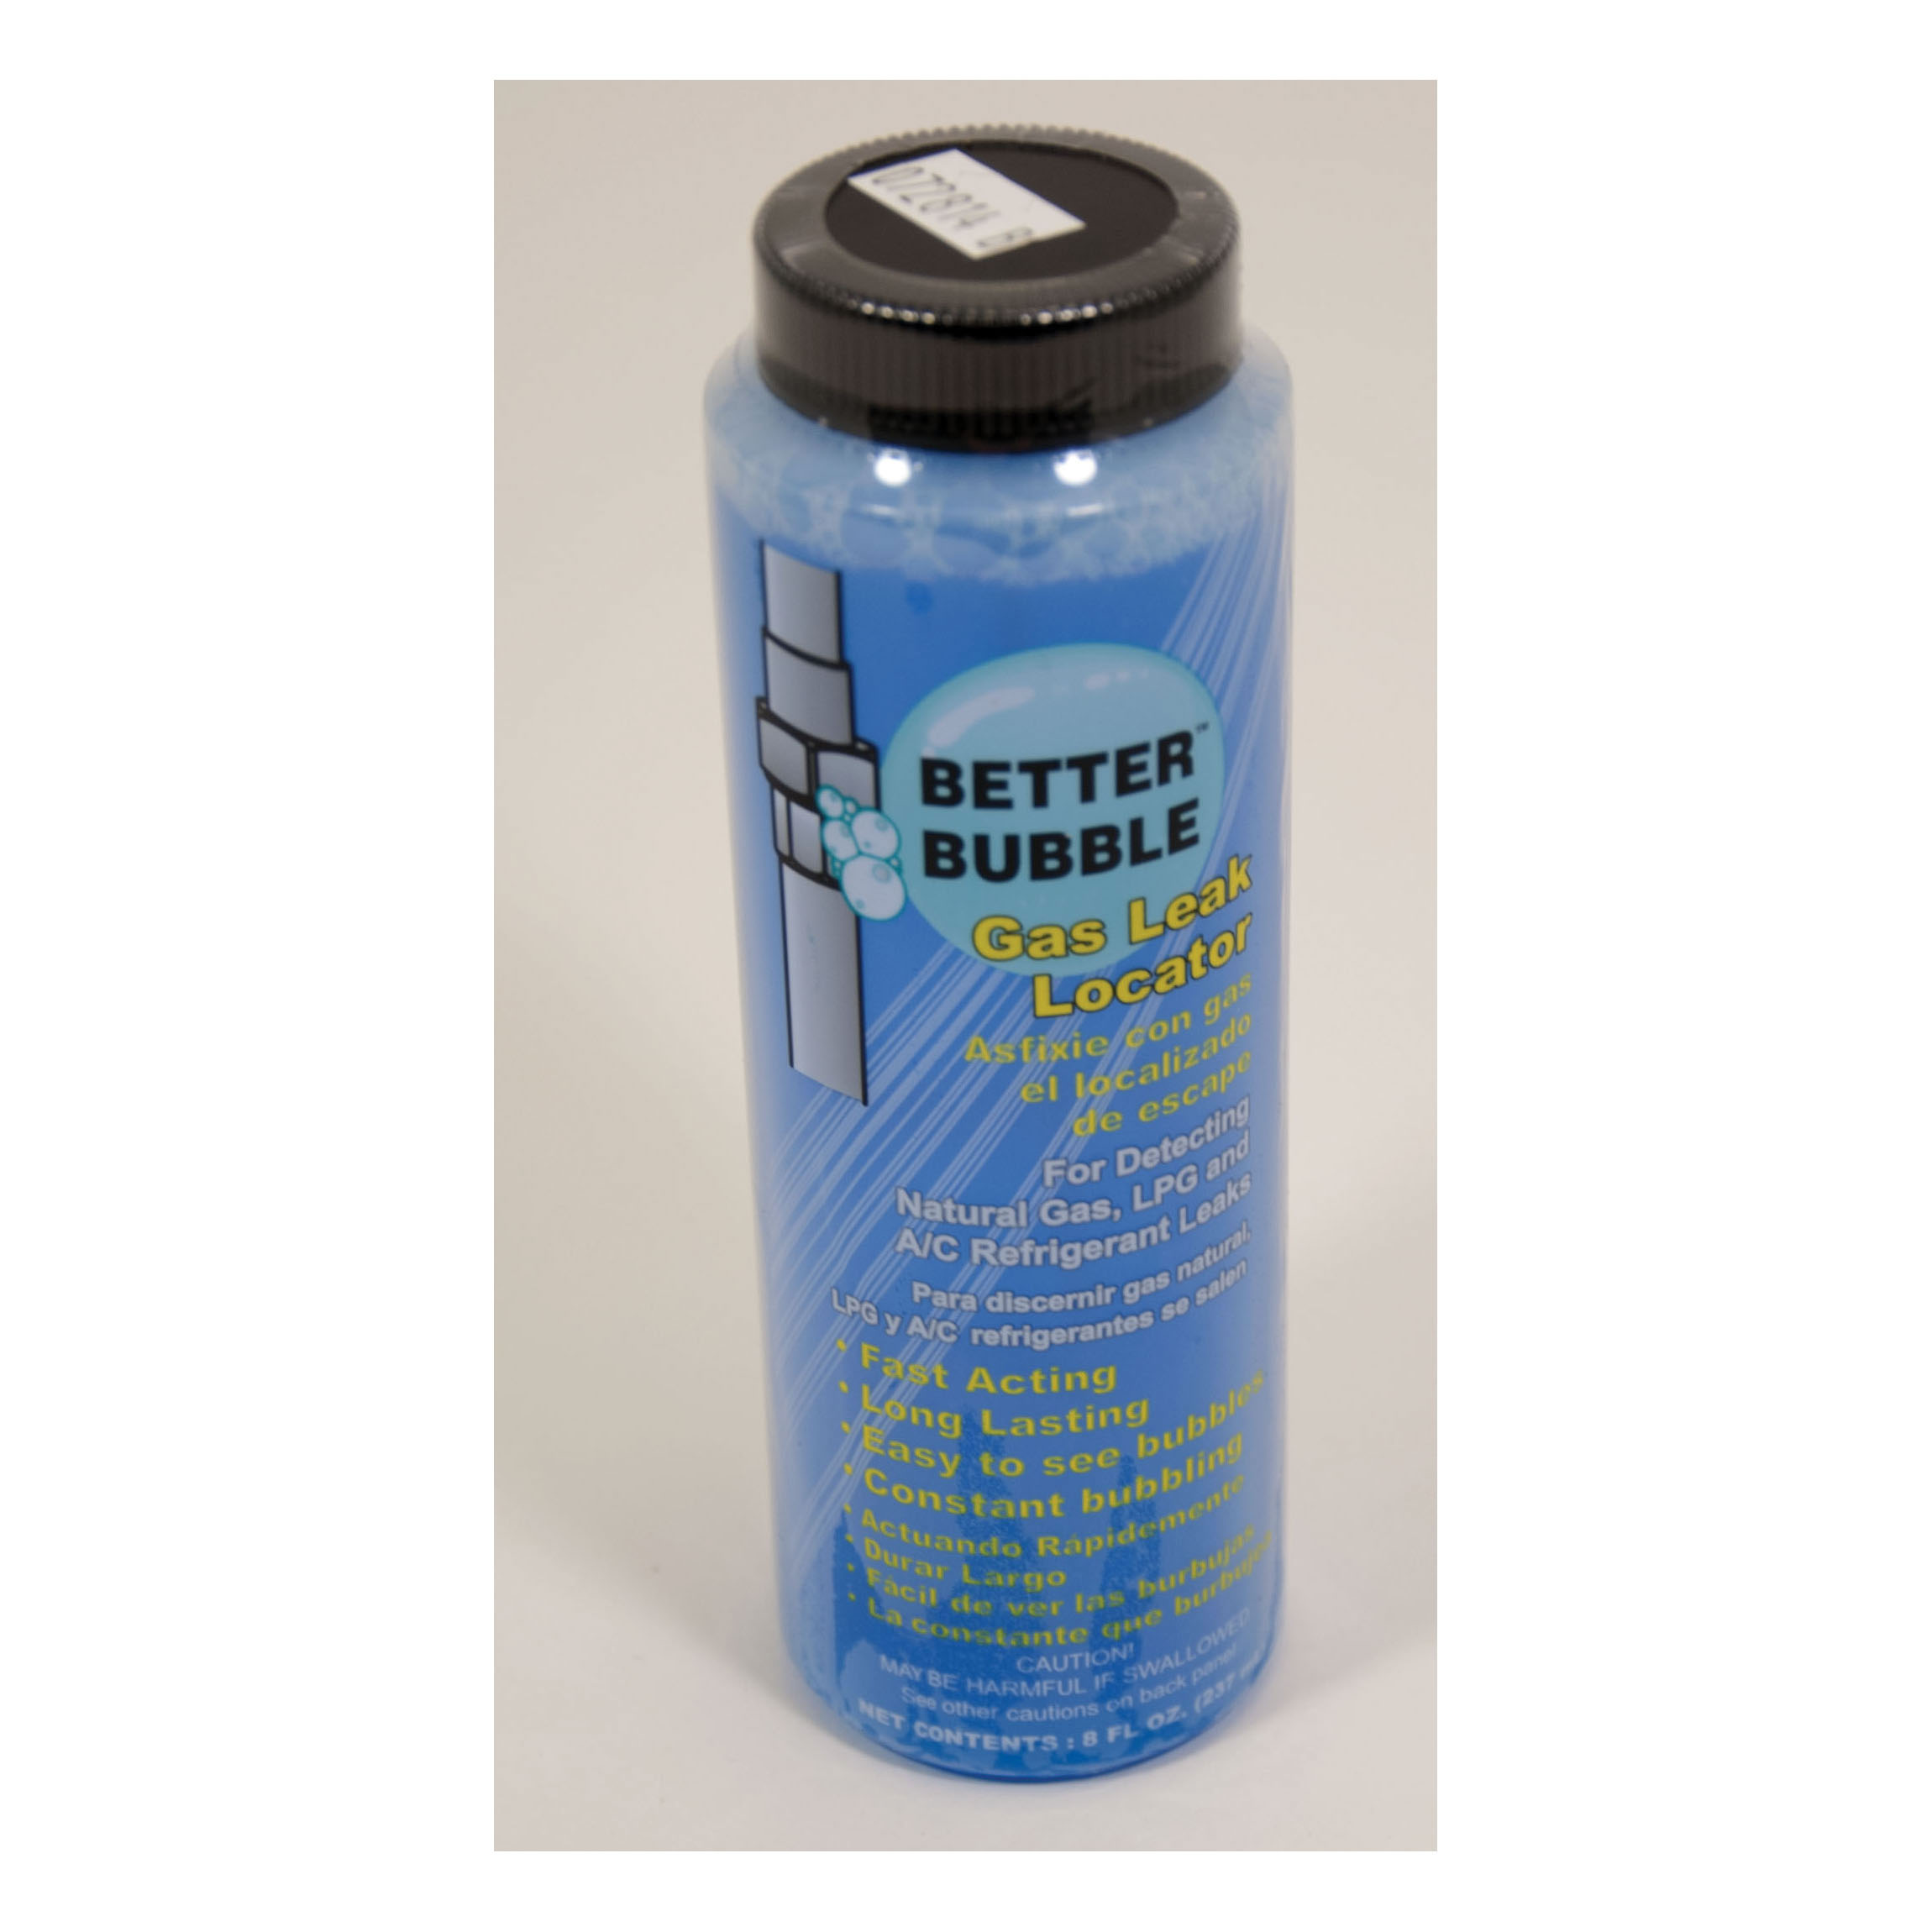 RectorSeal® RectorSeek™ Better Bubble™ 65554 Gas Leak Locator, 8 oz Dauber In Bottle, Liquid Form, Blue, Mild Odor/Scent